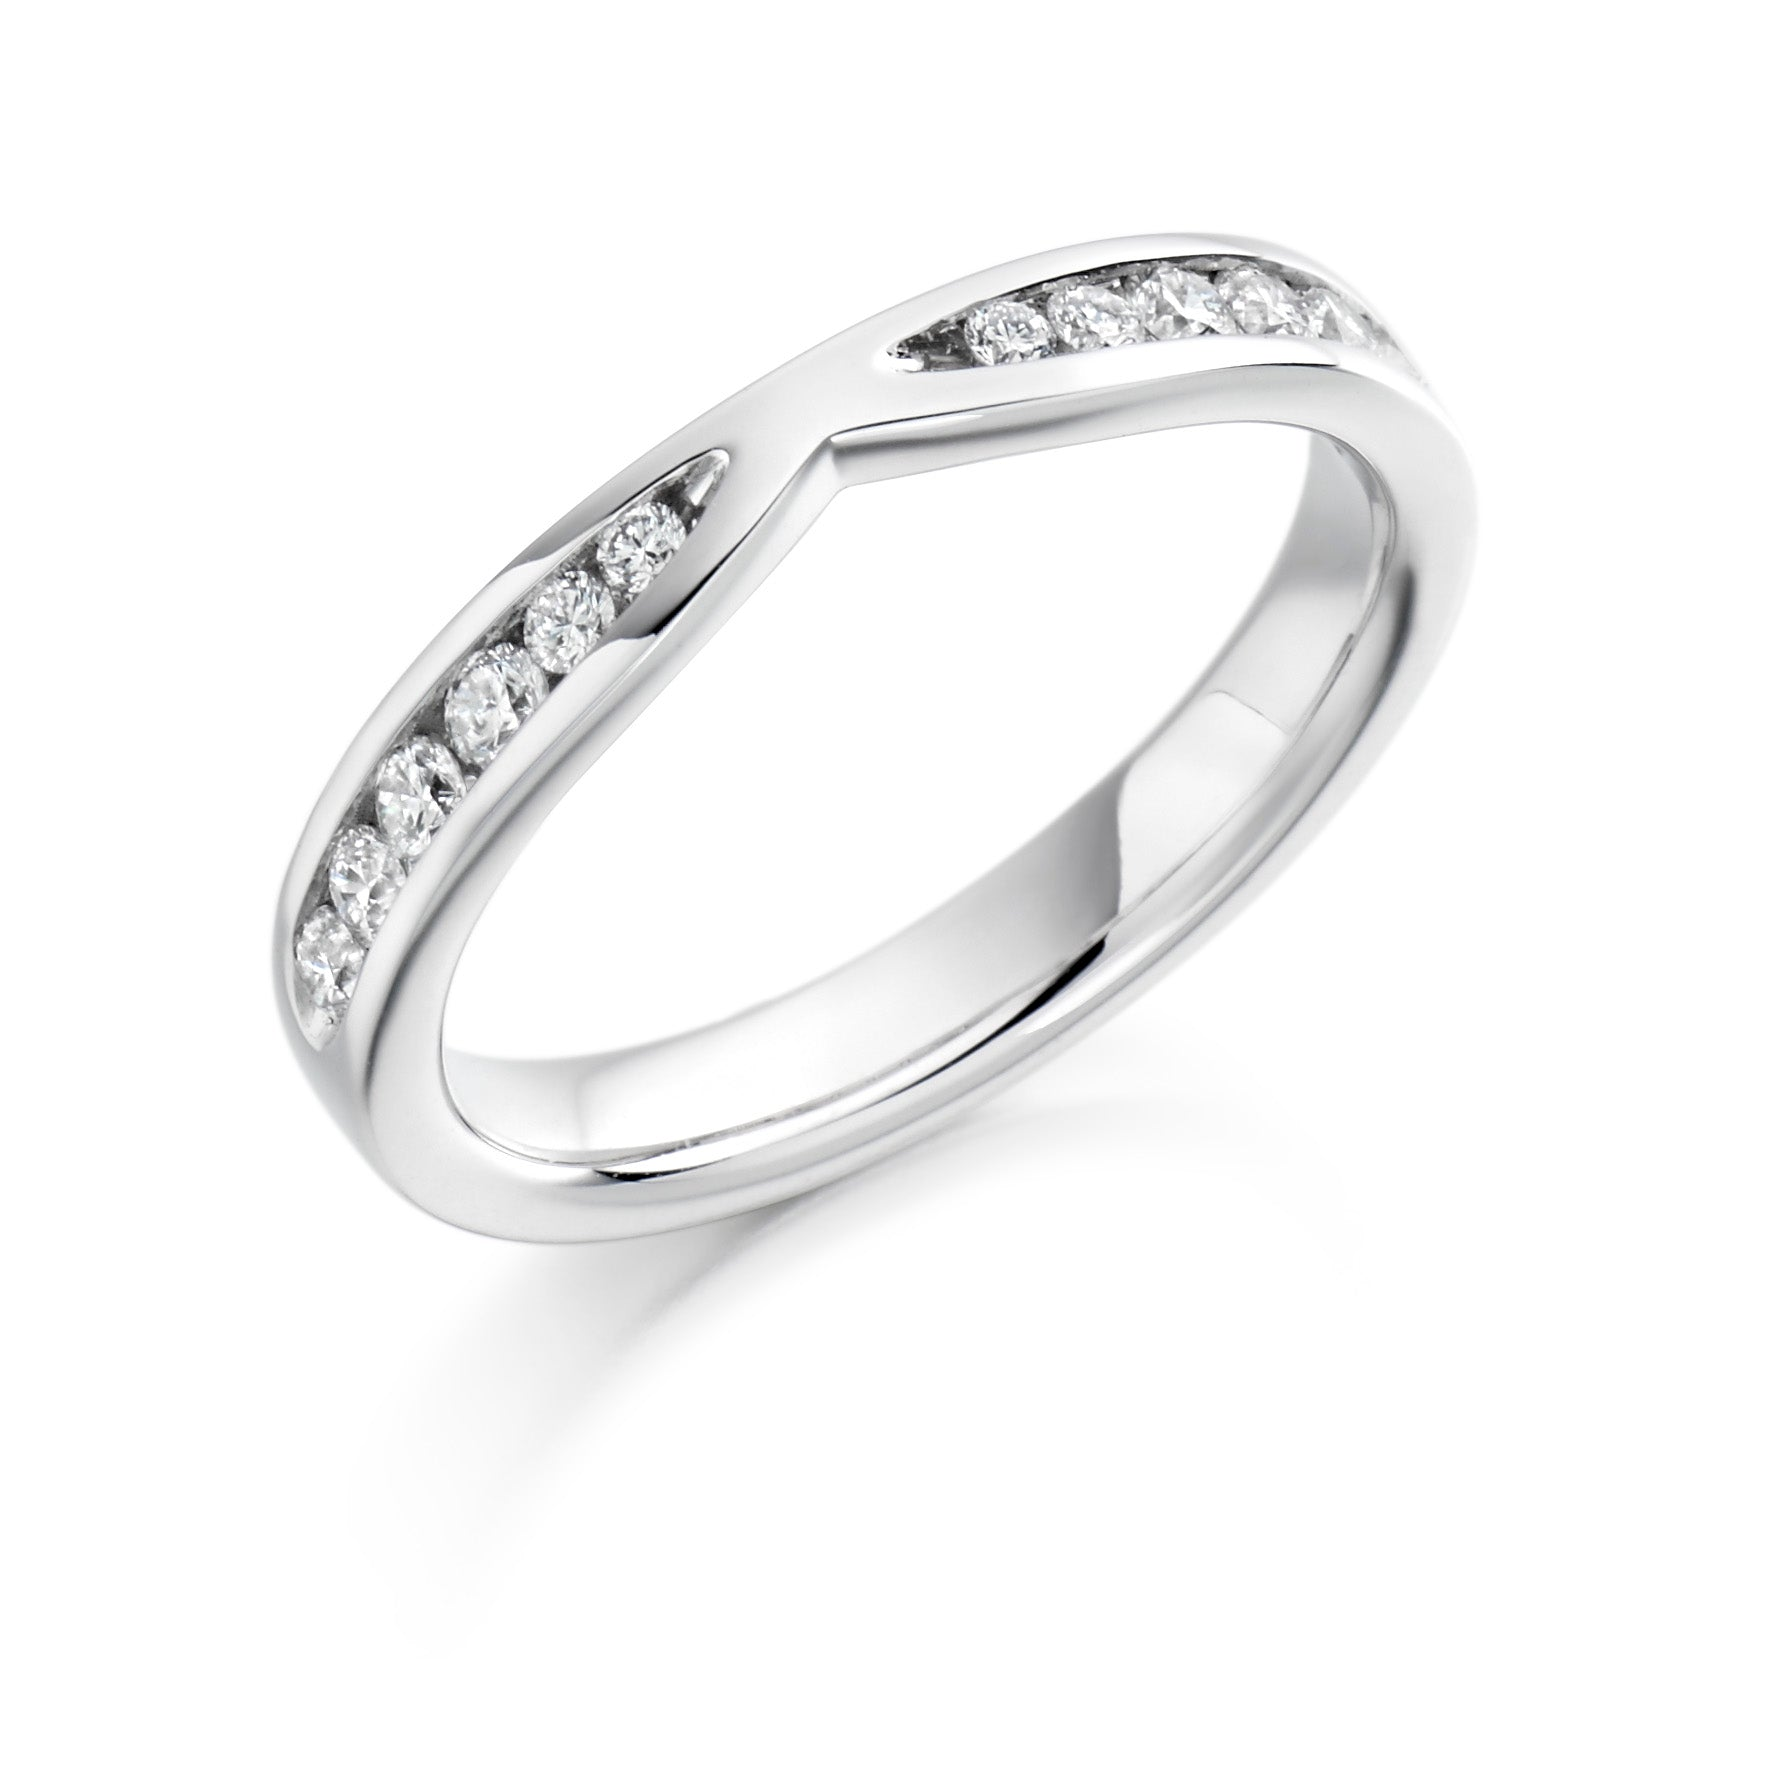 0.37ct Round Brilliant Cut Diamonds Curved Band - Wedding Ring - (Home Try-On)